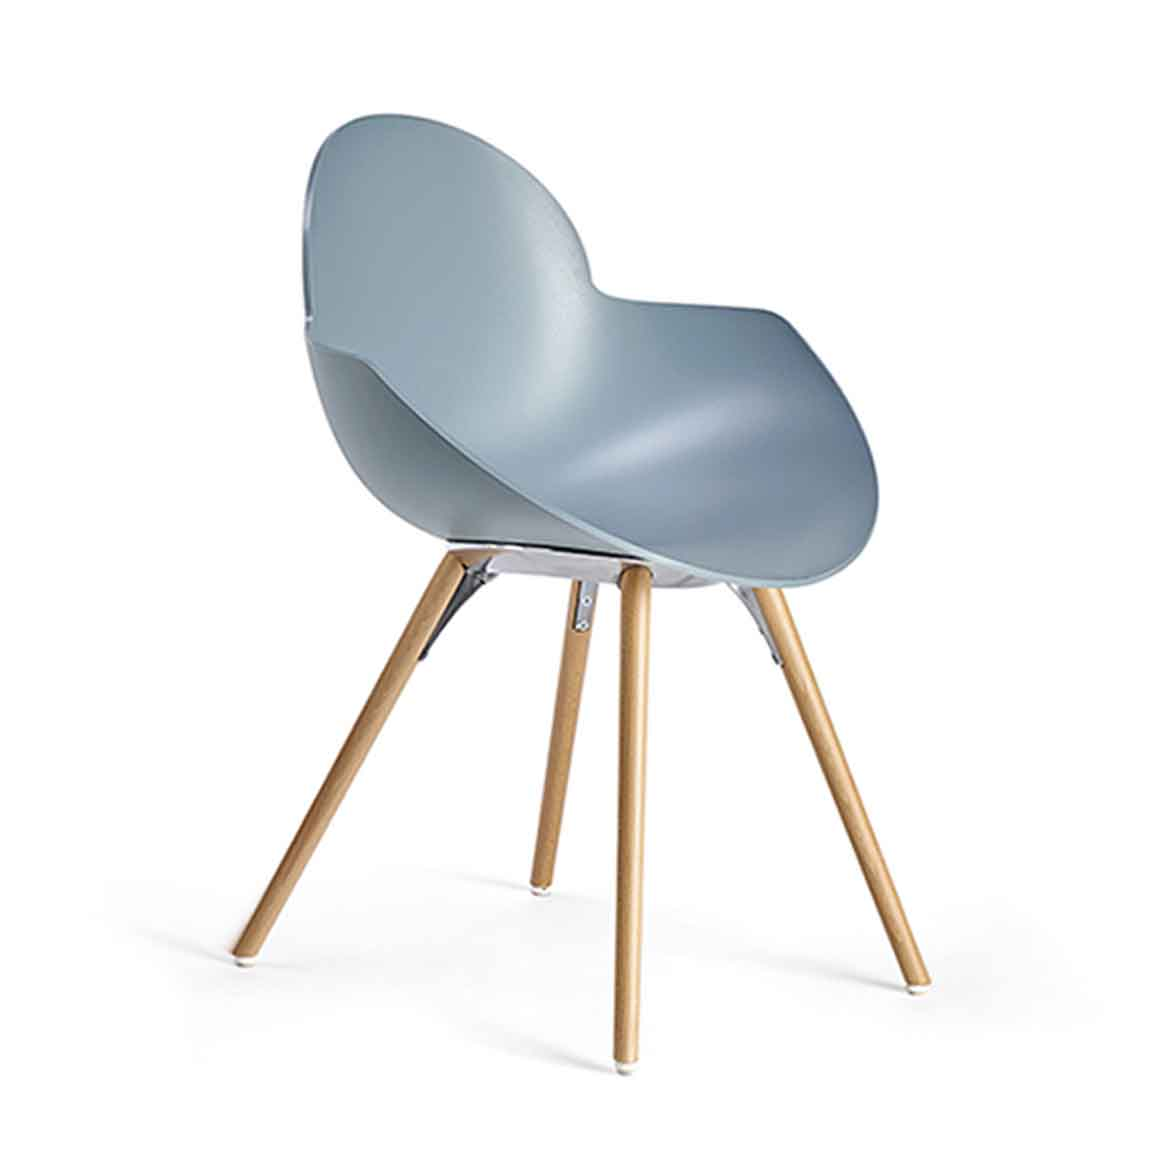 Chair with injection moulded polypropylene shell. Version avaliable with upholstered in leather, eco-leather or fabric. Also with many different legs and frames.